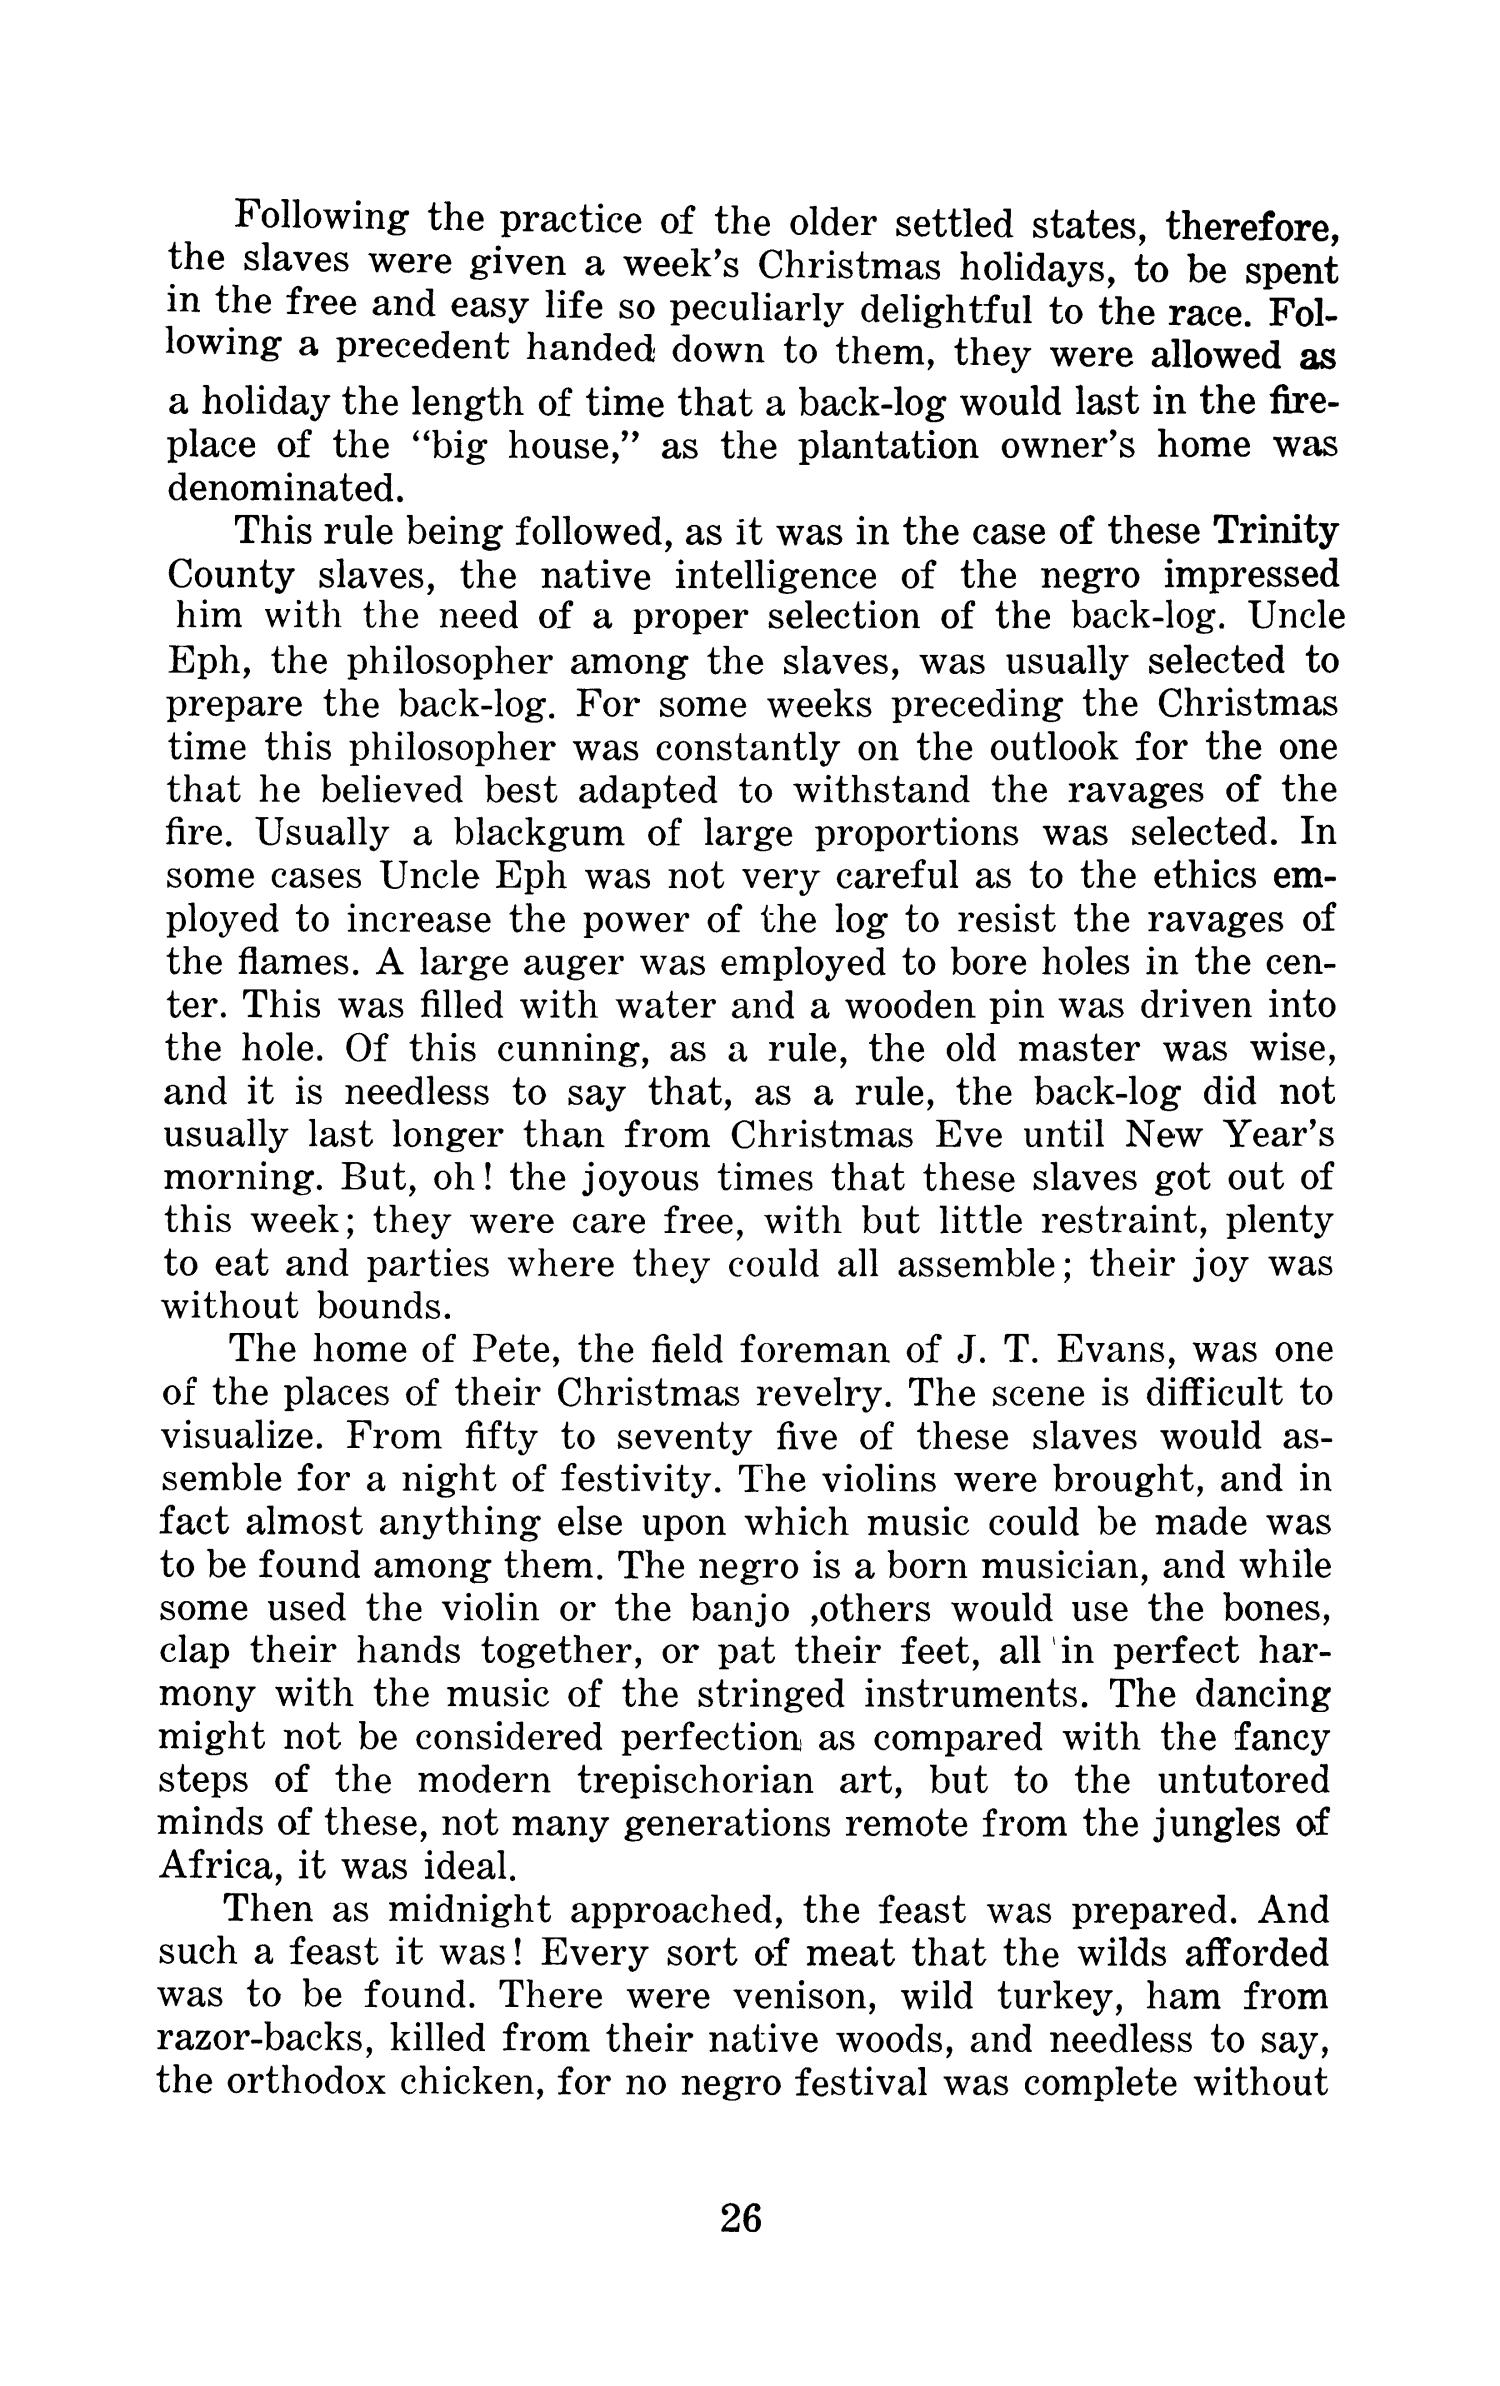 A History Of Trinity County Texas, 1827 to 1928                                                                                                      26